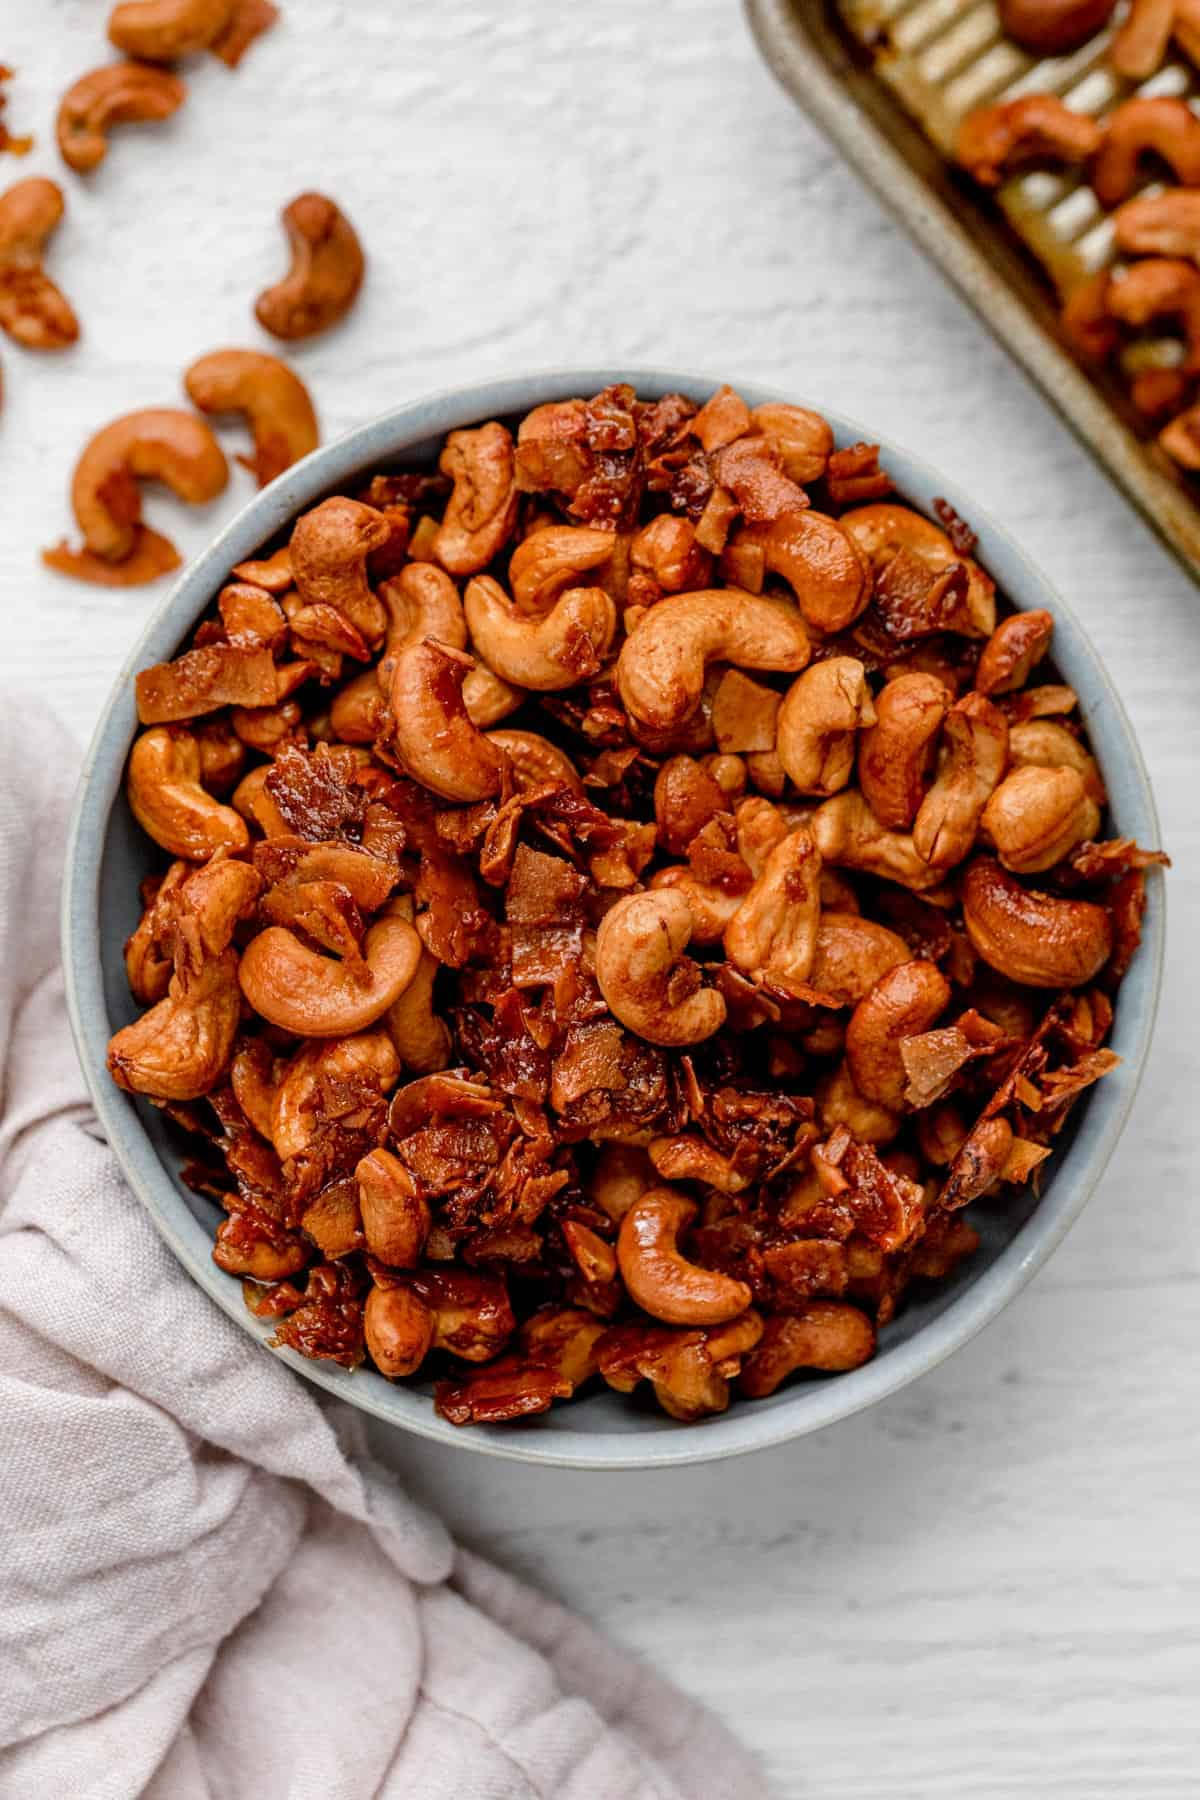 Make your own to-go snack with this Vanilla Toasted Coconut Cashew Mix recipe. It only needs 5 simple ingredients and makes healthy snacking a breeze!